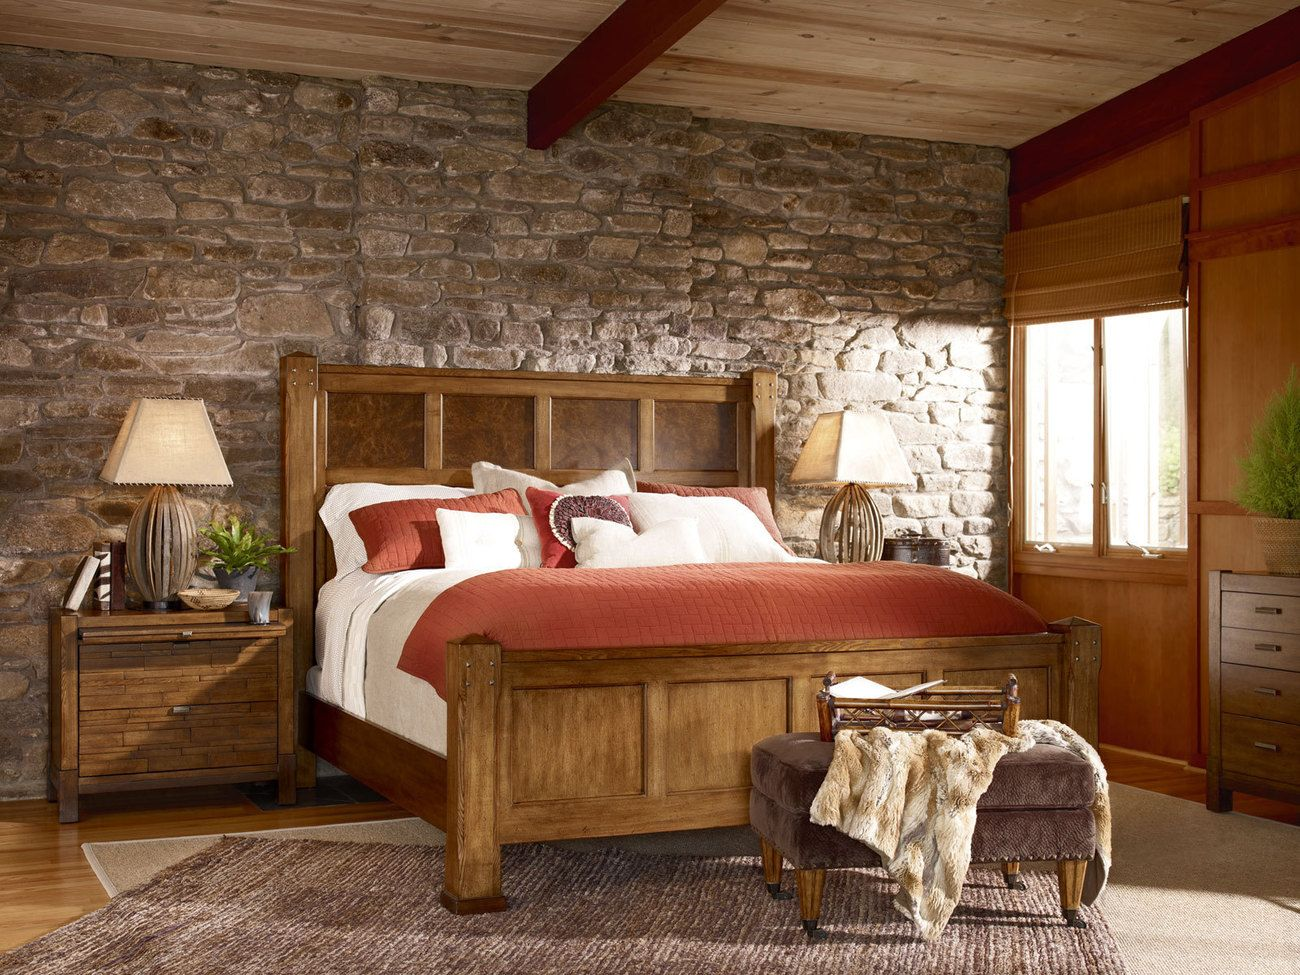 Wood Decorating Ideas for Country Brown Themed